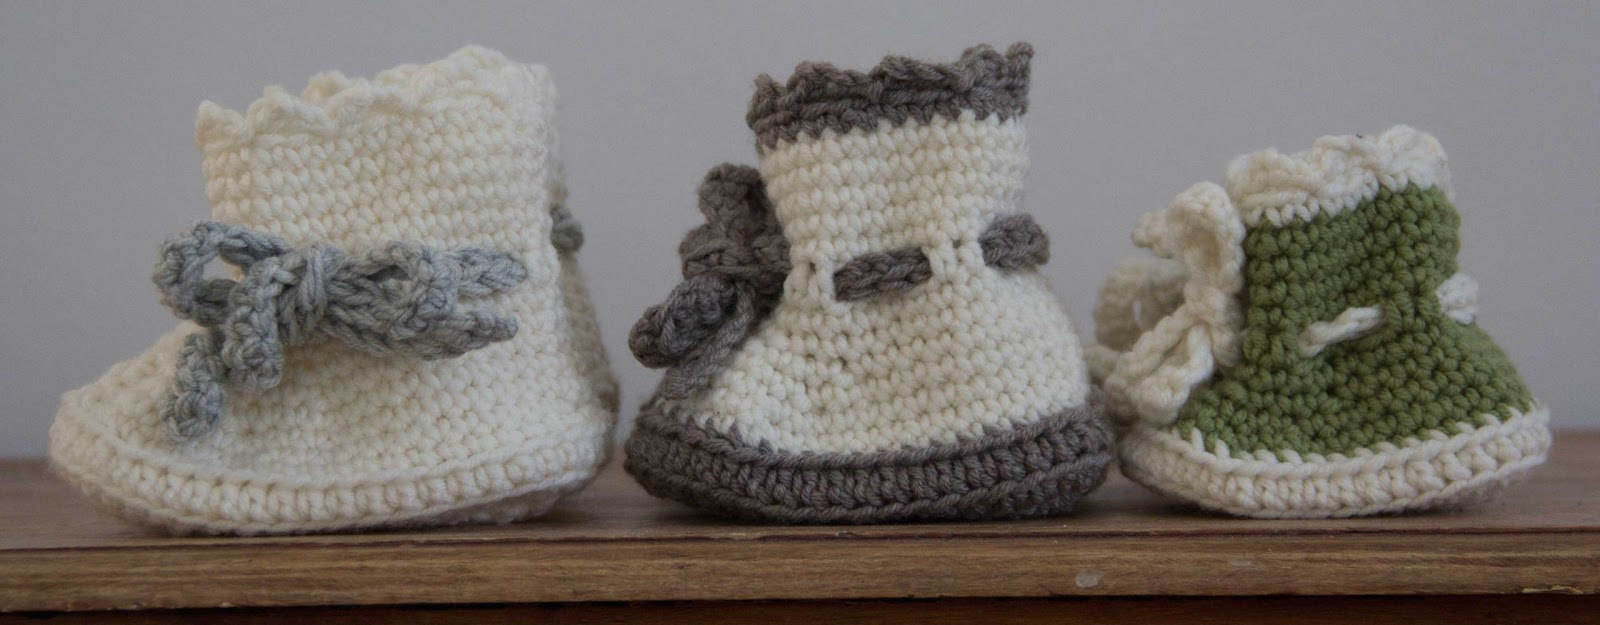 crochet baby boots patern